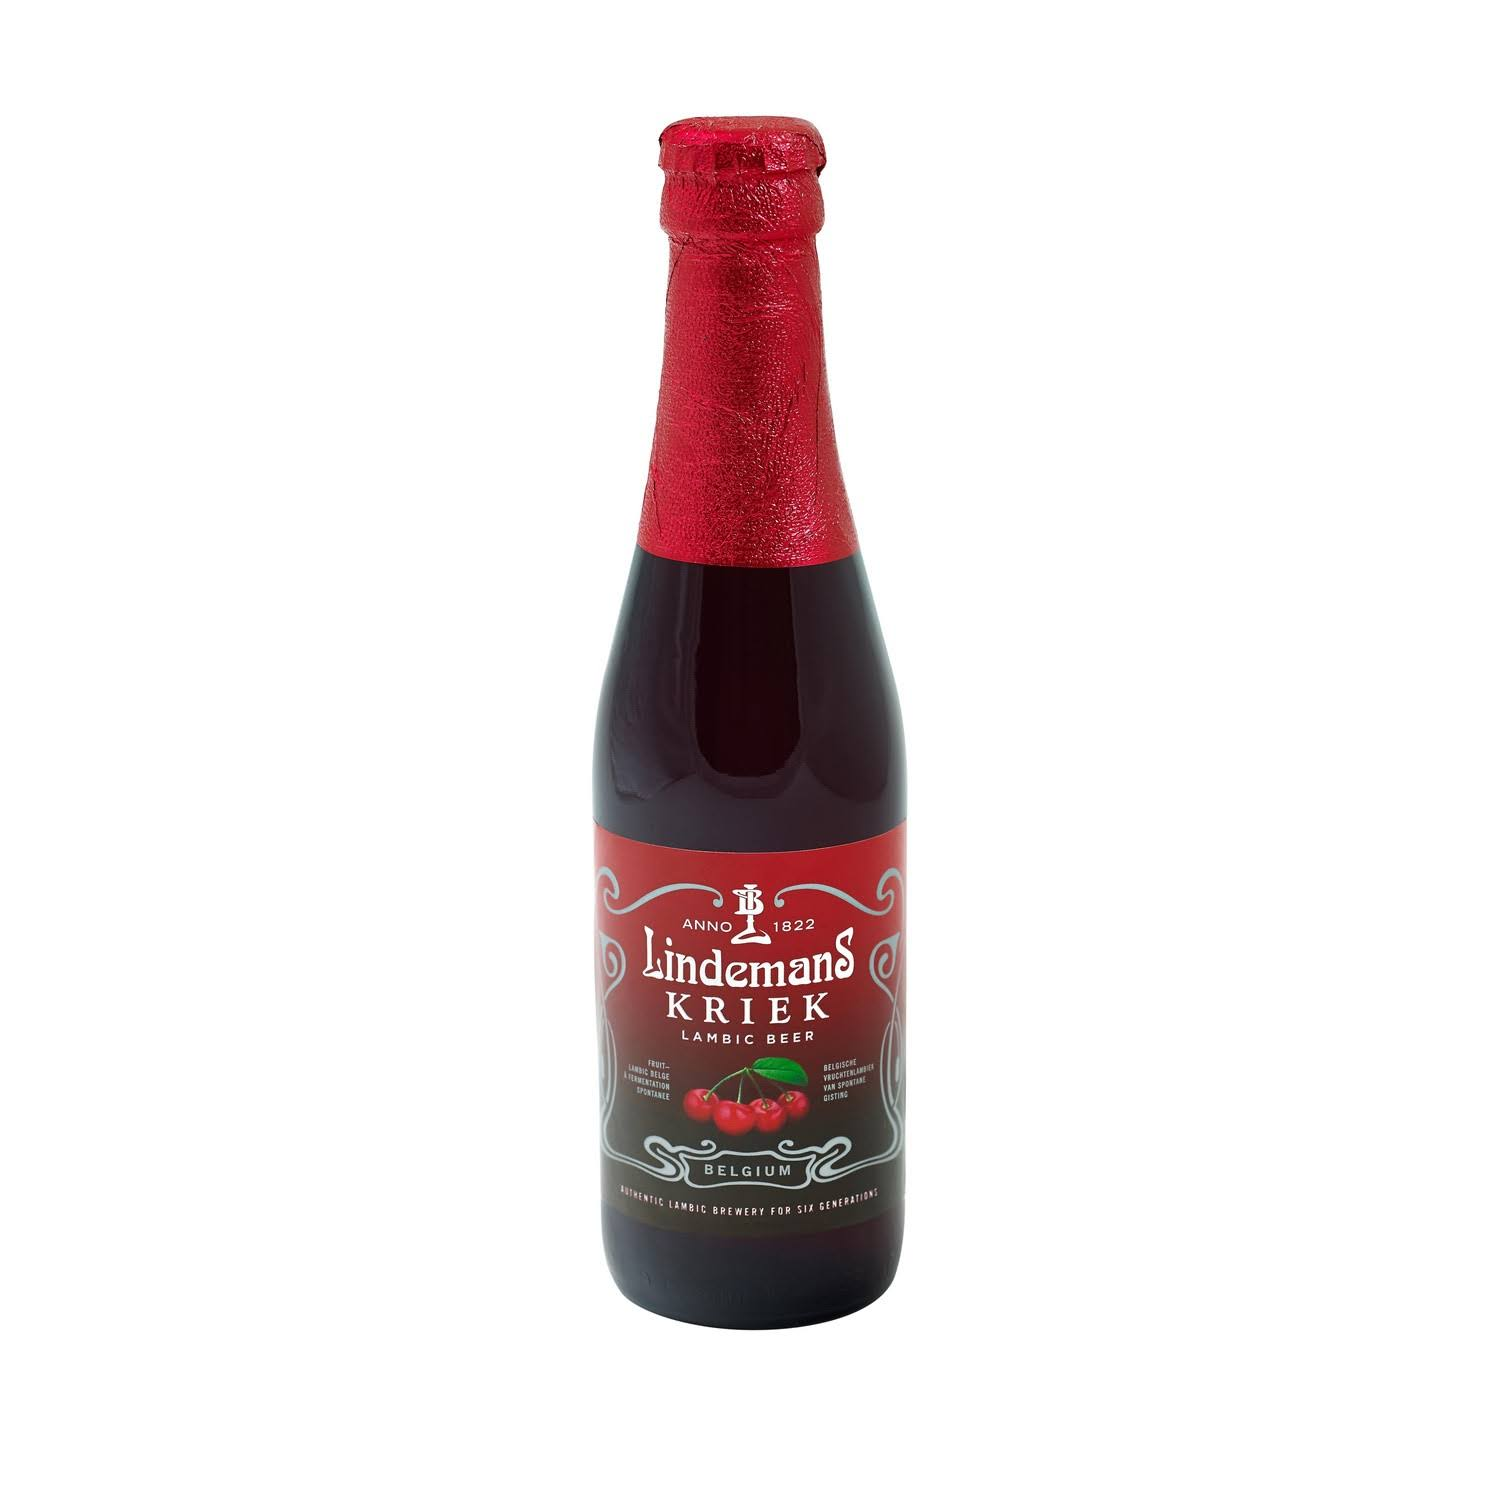 Lindemans Kriek Lambic Beer Bouteille - 250ml